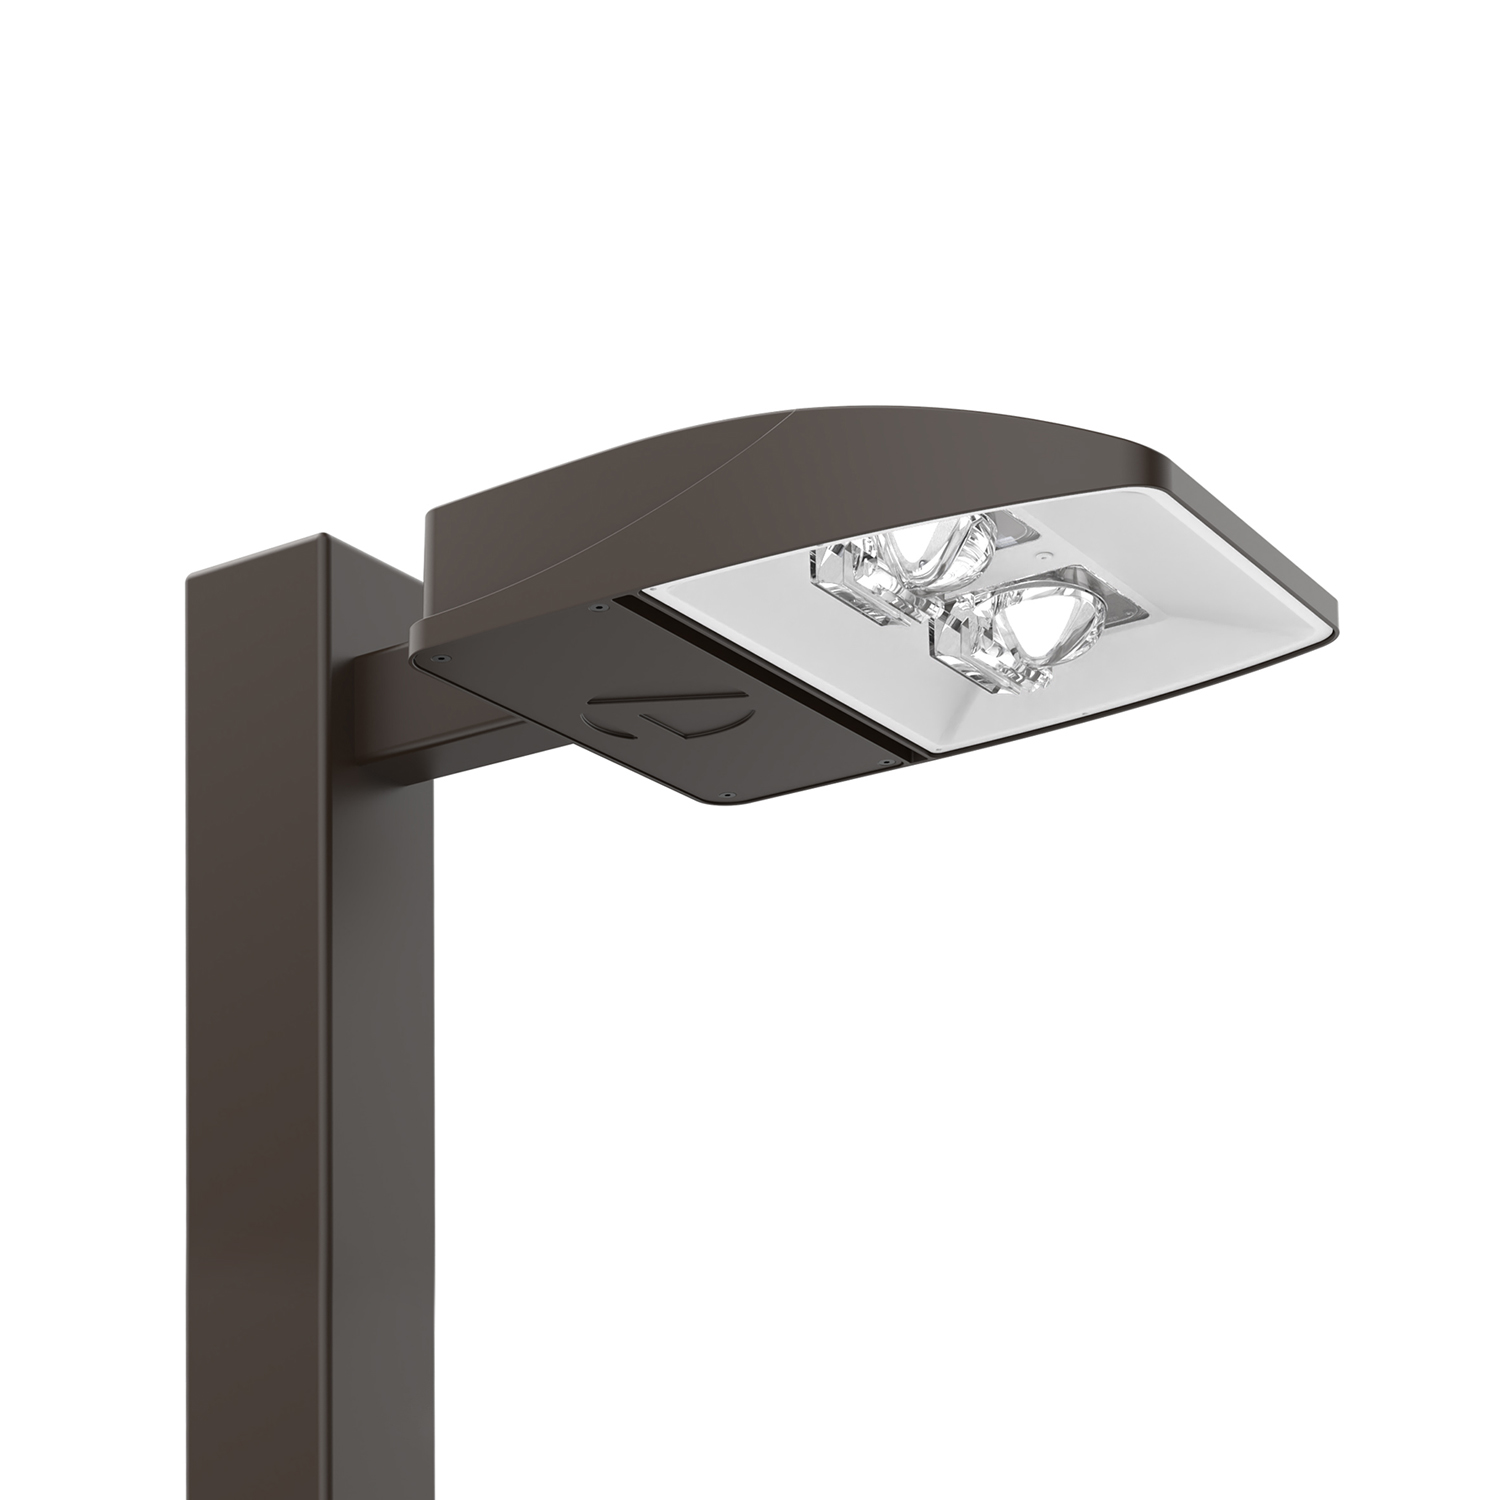 Contractor Select ESX LED Area Luminaire